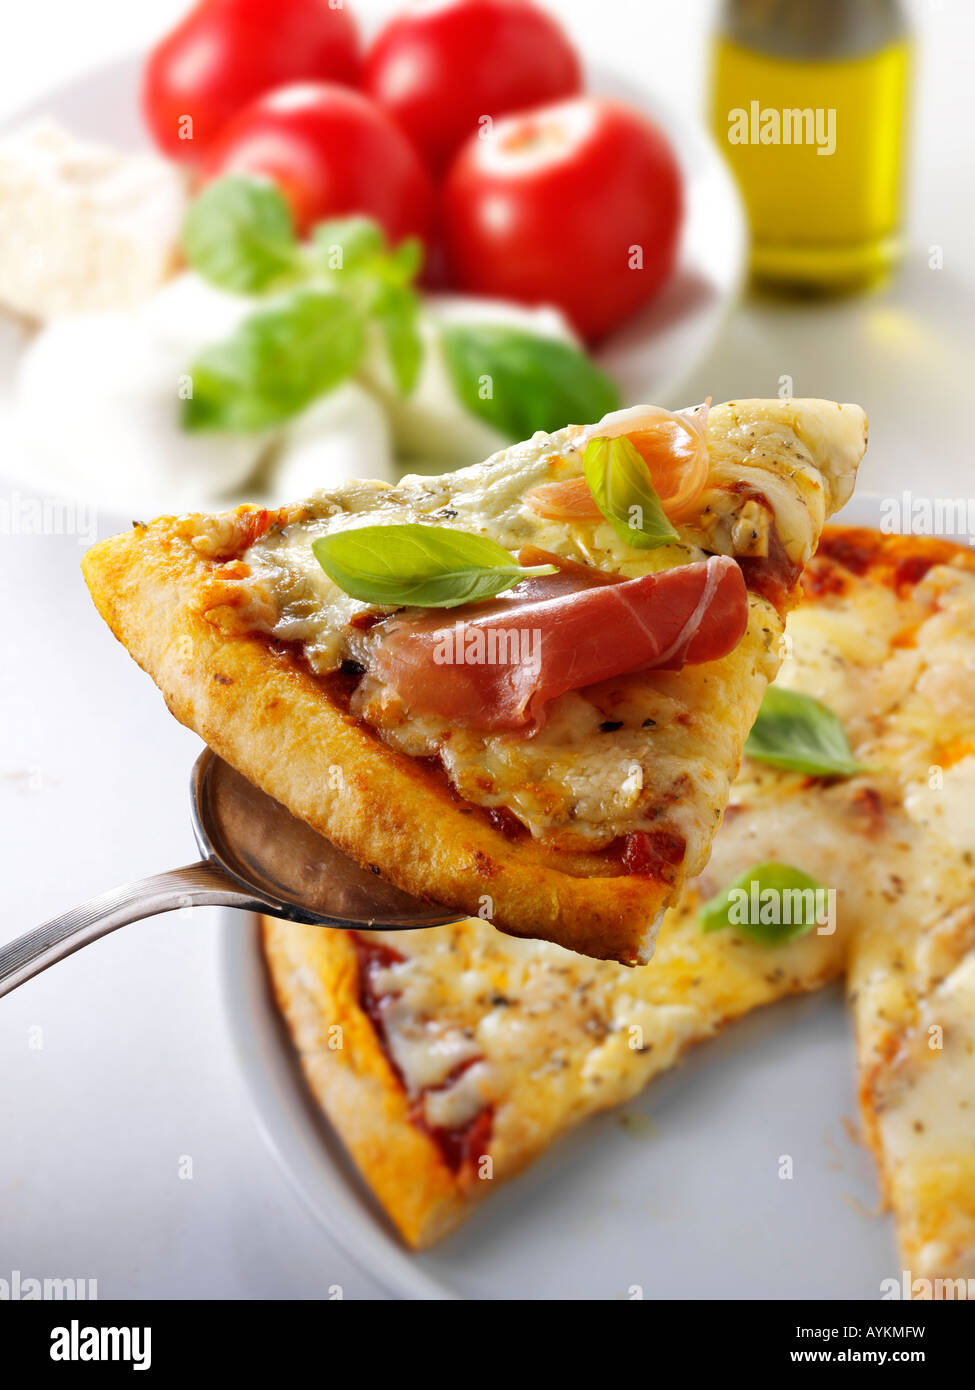 Pizza slice topped with prosciutto or Parma ham - Stock Image